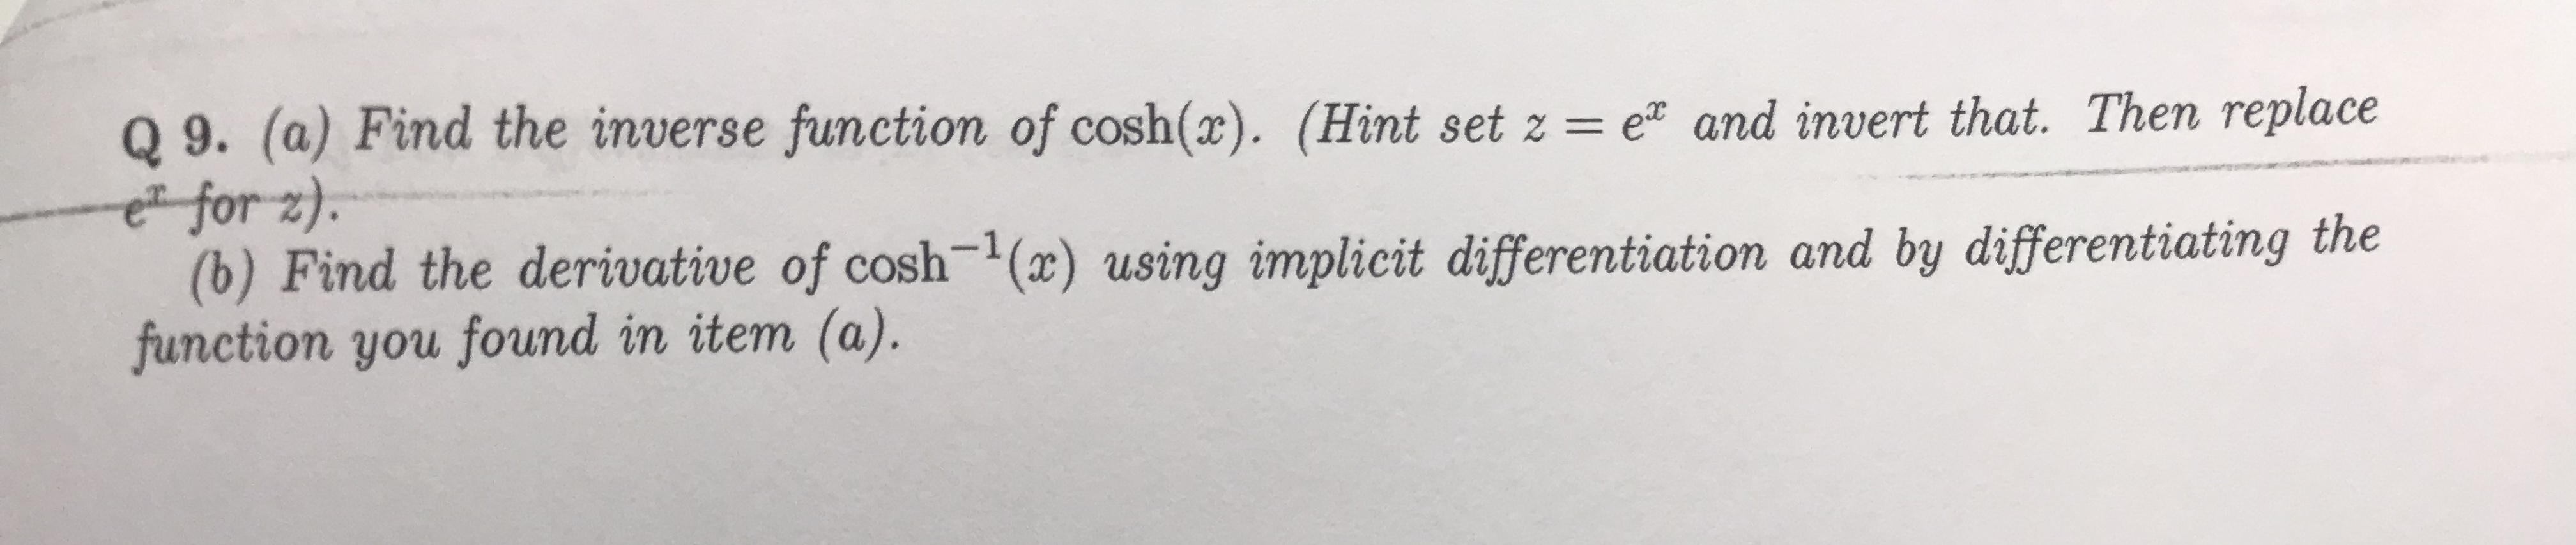 Q 9. (a) Find the inverse function of cosh(x). (Hint set z = e and invert that. Then replace e for z). (b) Find the derivative of cosh1 (x) using implicit differentiation and by differentiating the function you found in item (a).